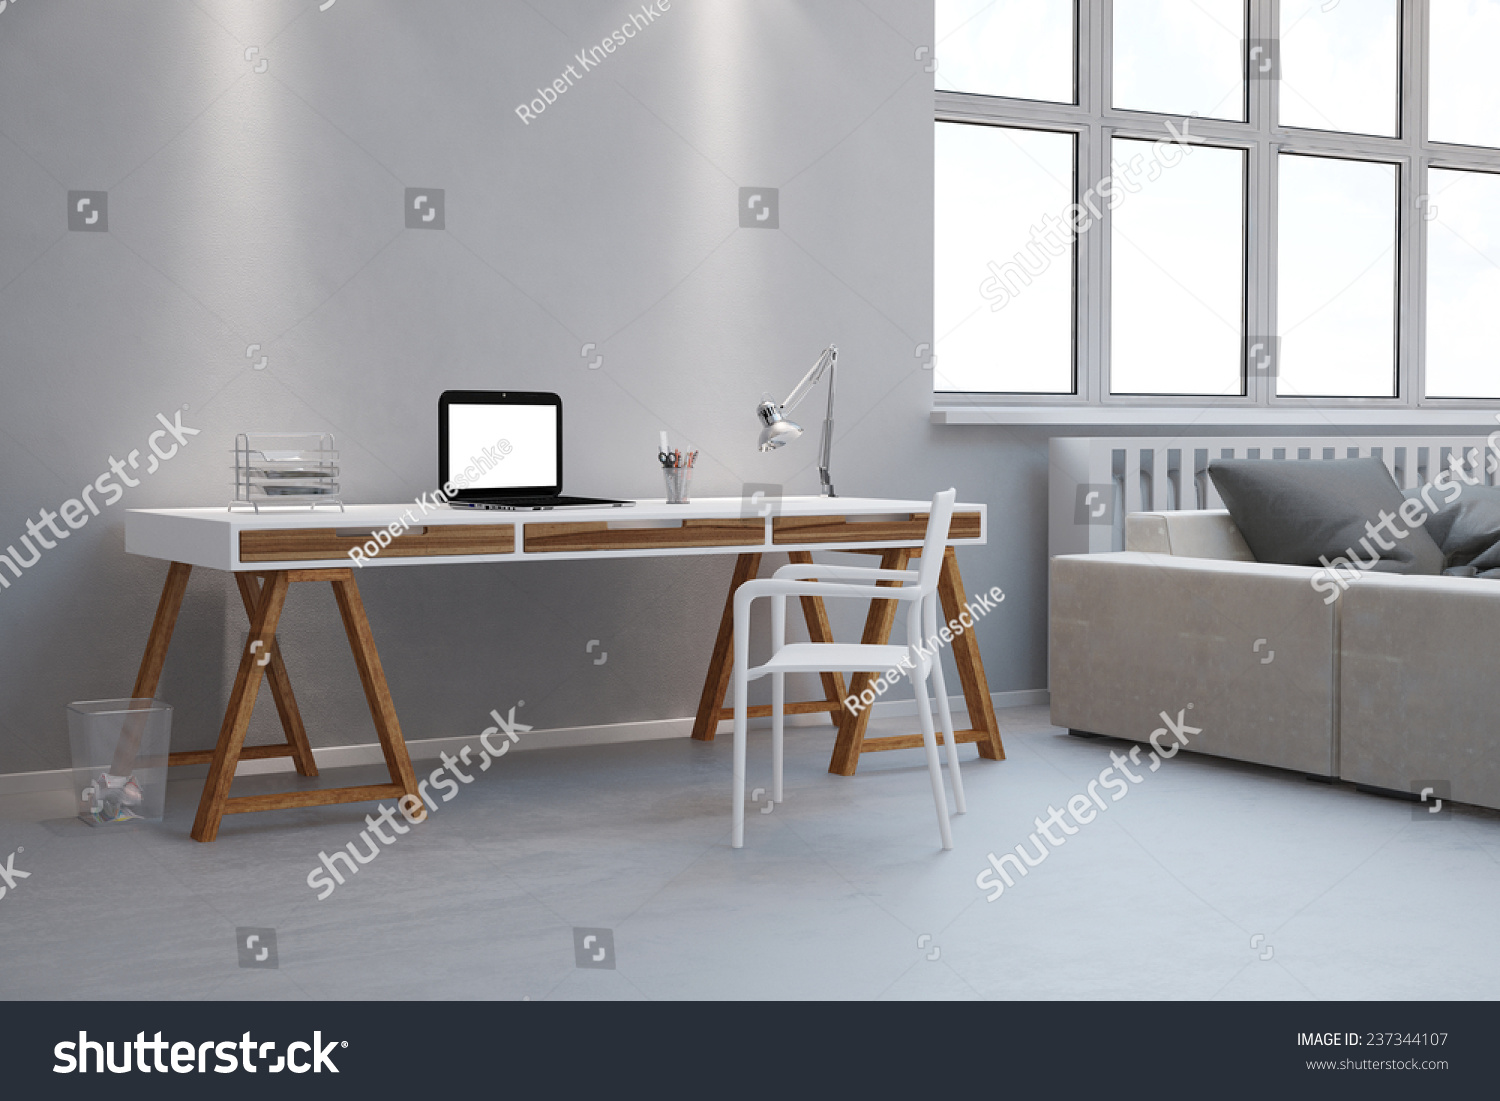 small desks for home office. Small Desk As Home Office With Laptop Computer In A Living Room (3D Rendering) Desks For E